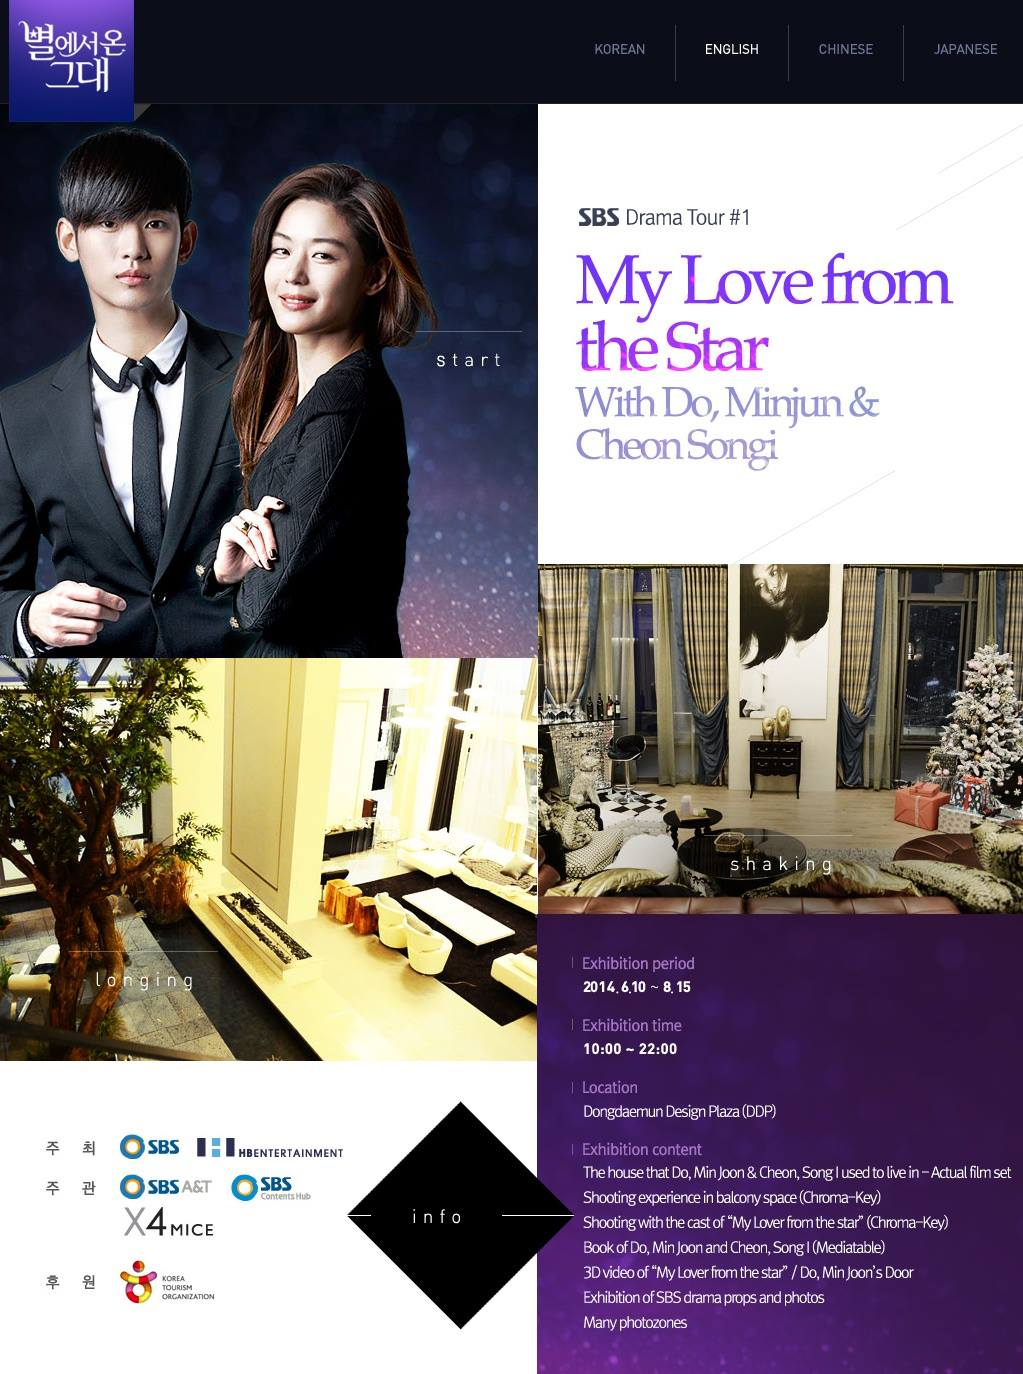 """Seoul trip] Korea Drama """"My Love from the Star"""" Special Exhibition"""